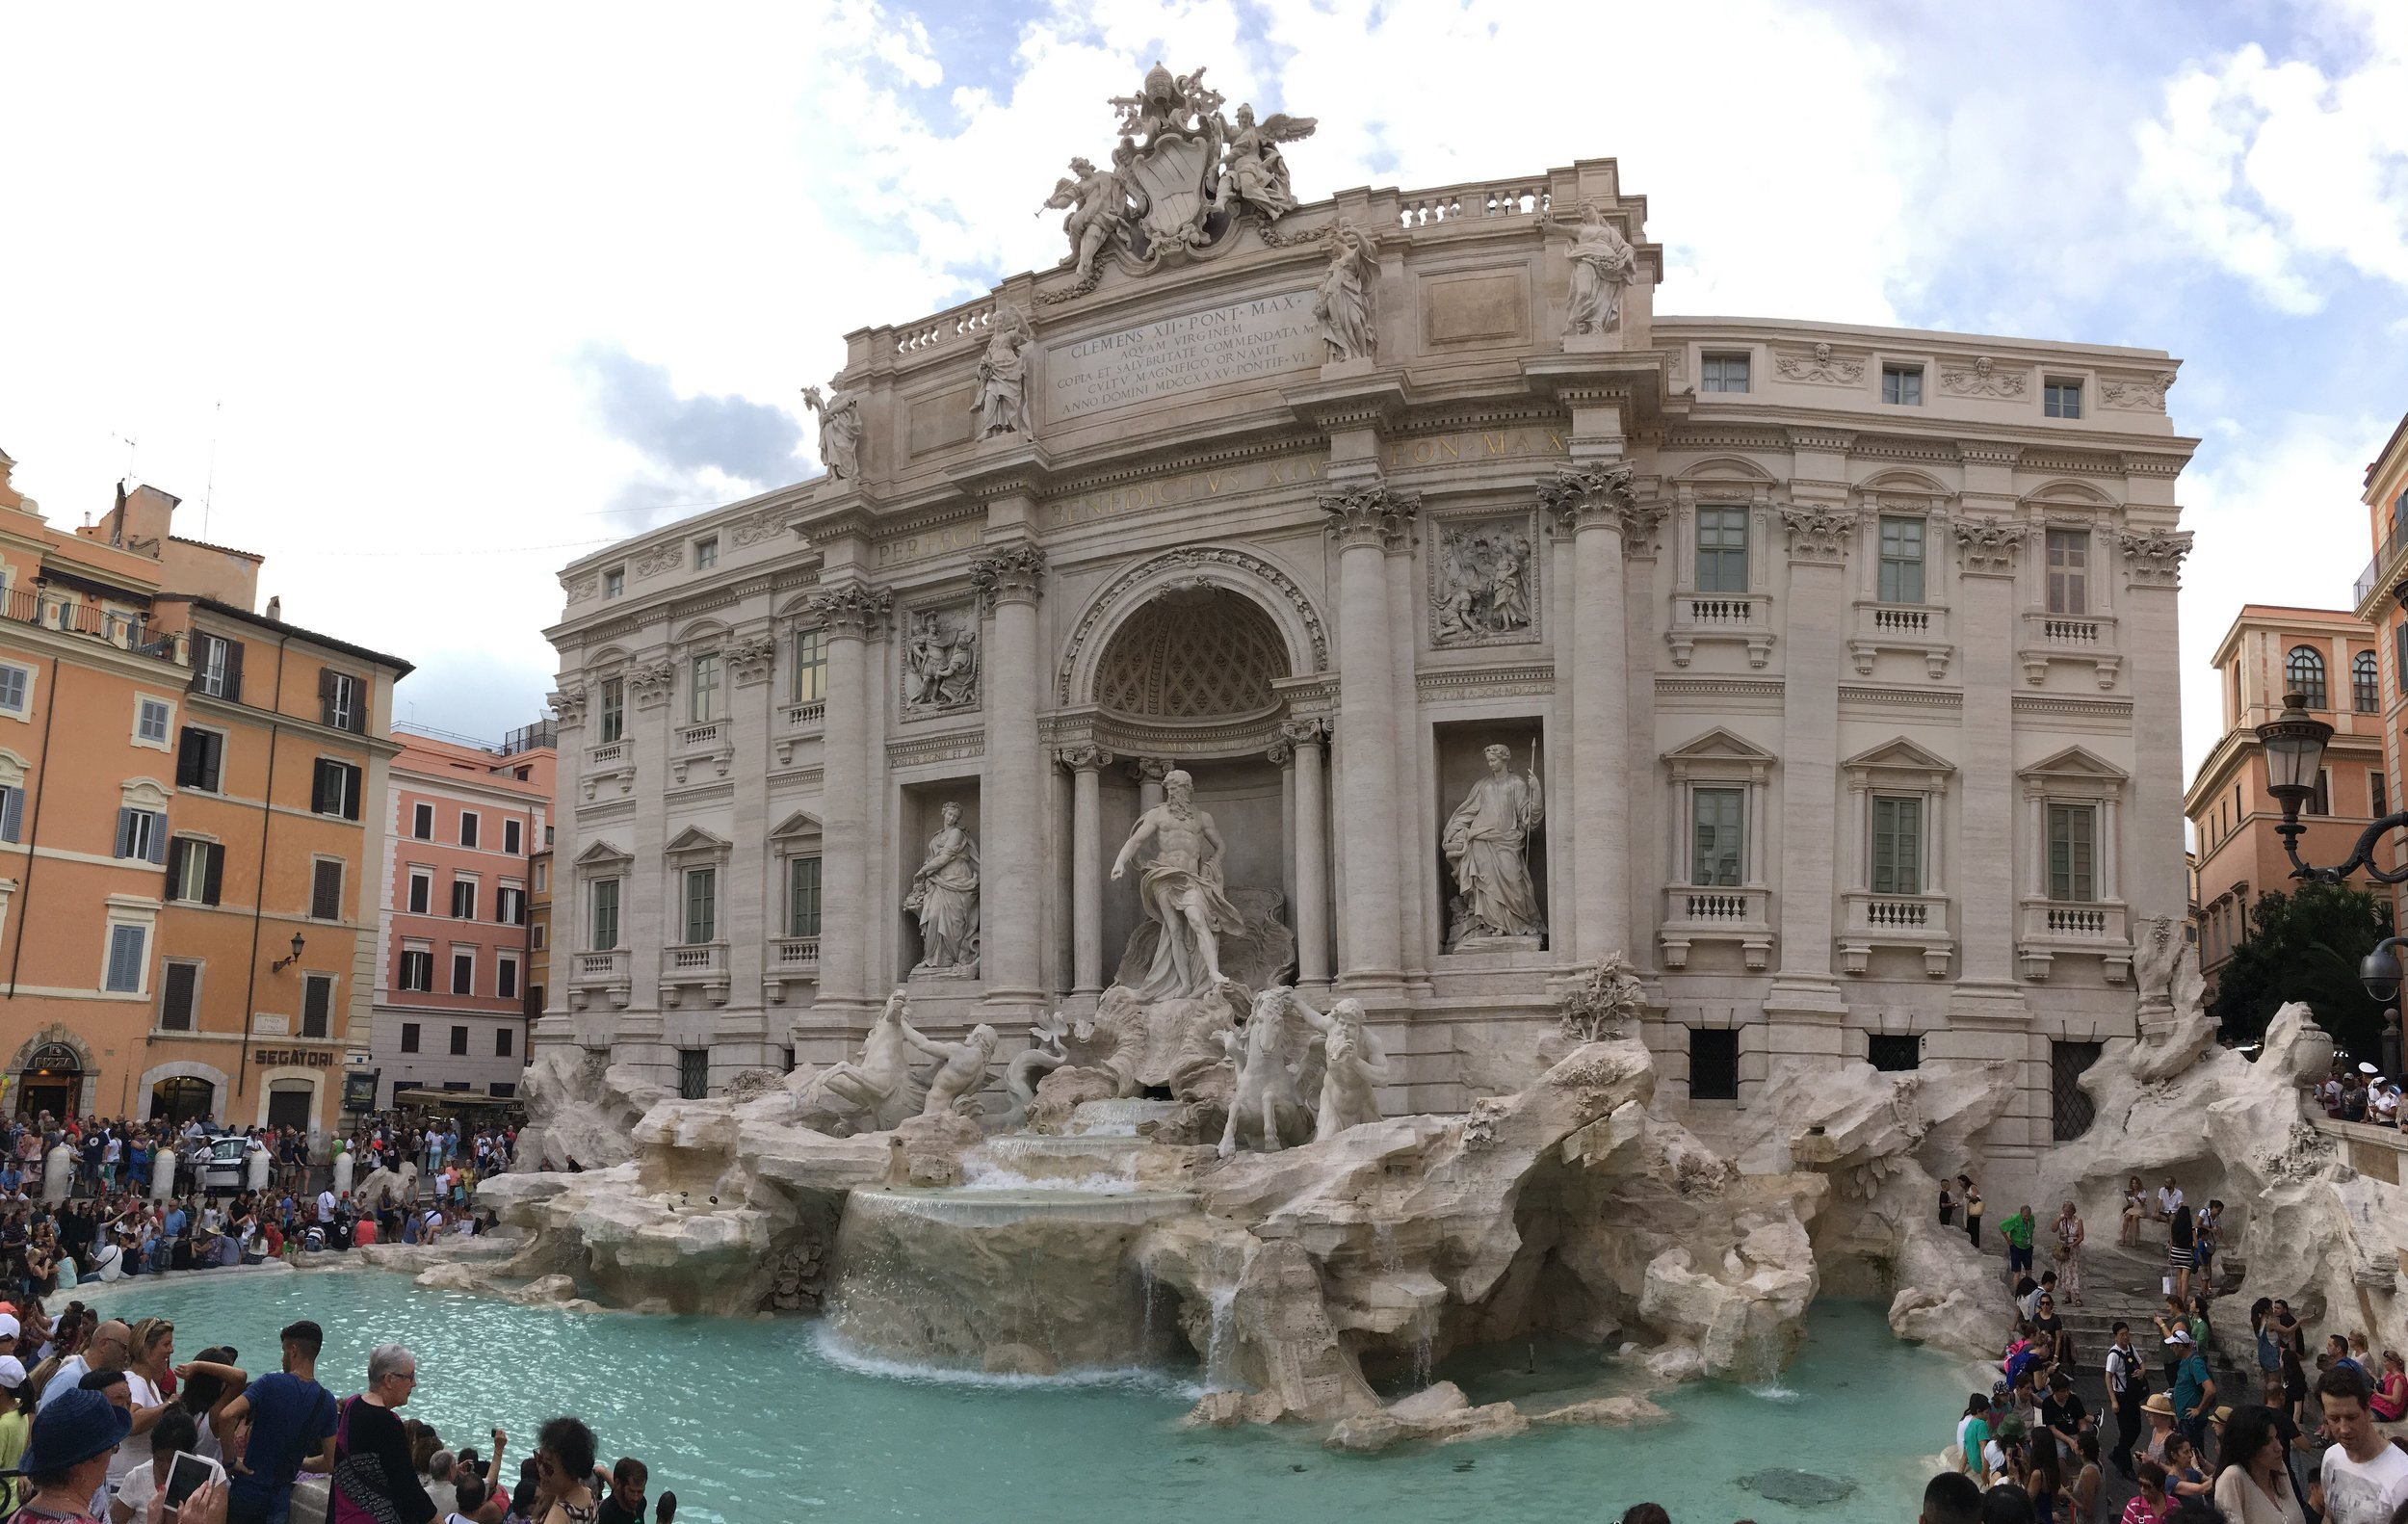 Trevi Fountain. There were SO many people there.